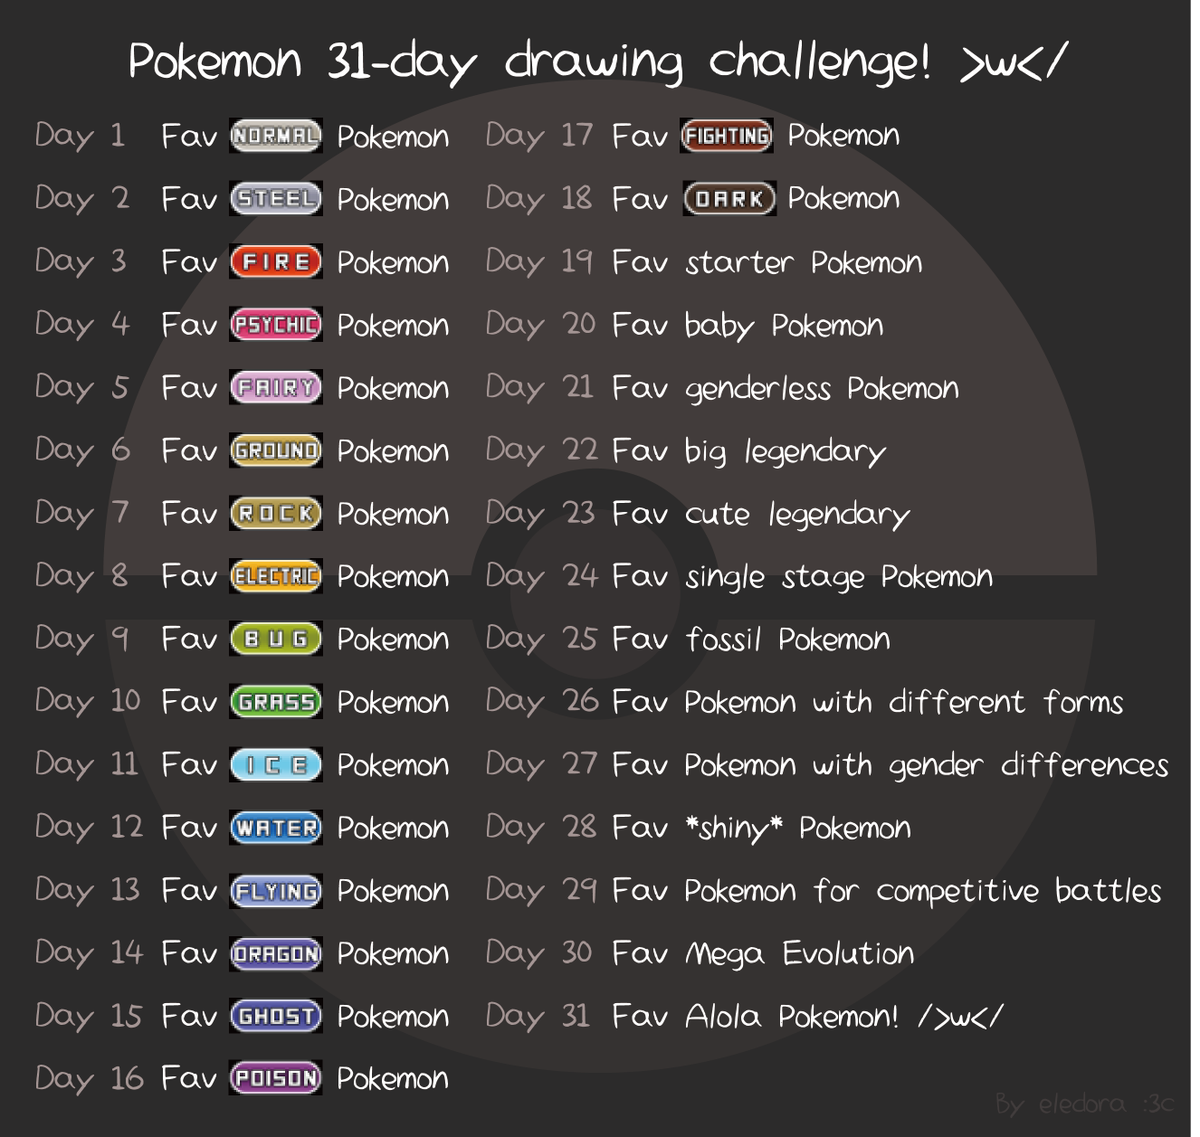 Eledora On Twitter Made A Pokemon Drawing Challenge List For